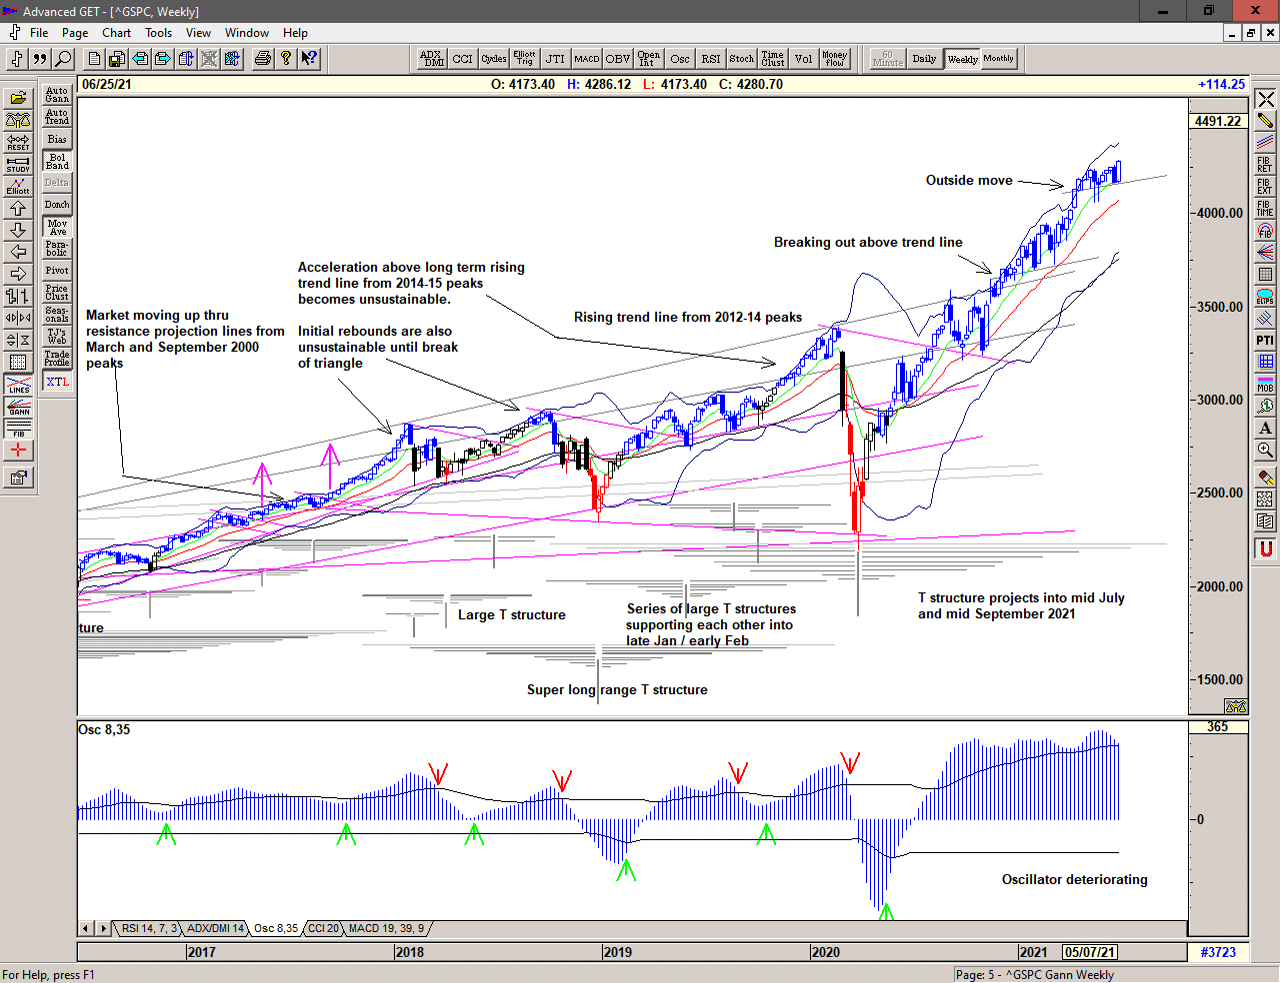 Weekly chart of S&P 500 for 28 June 2021